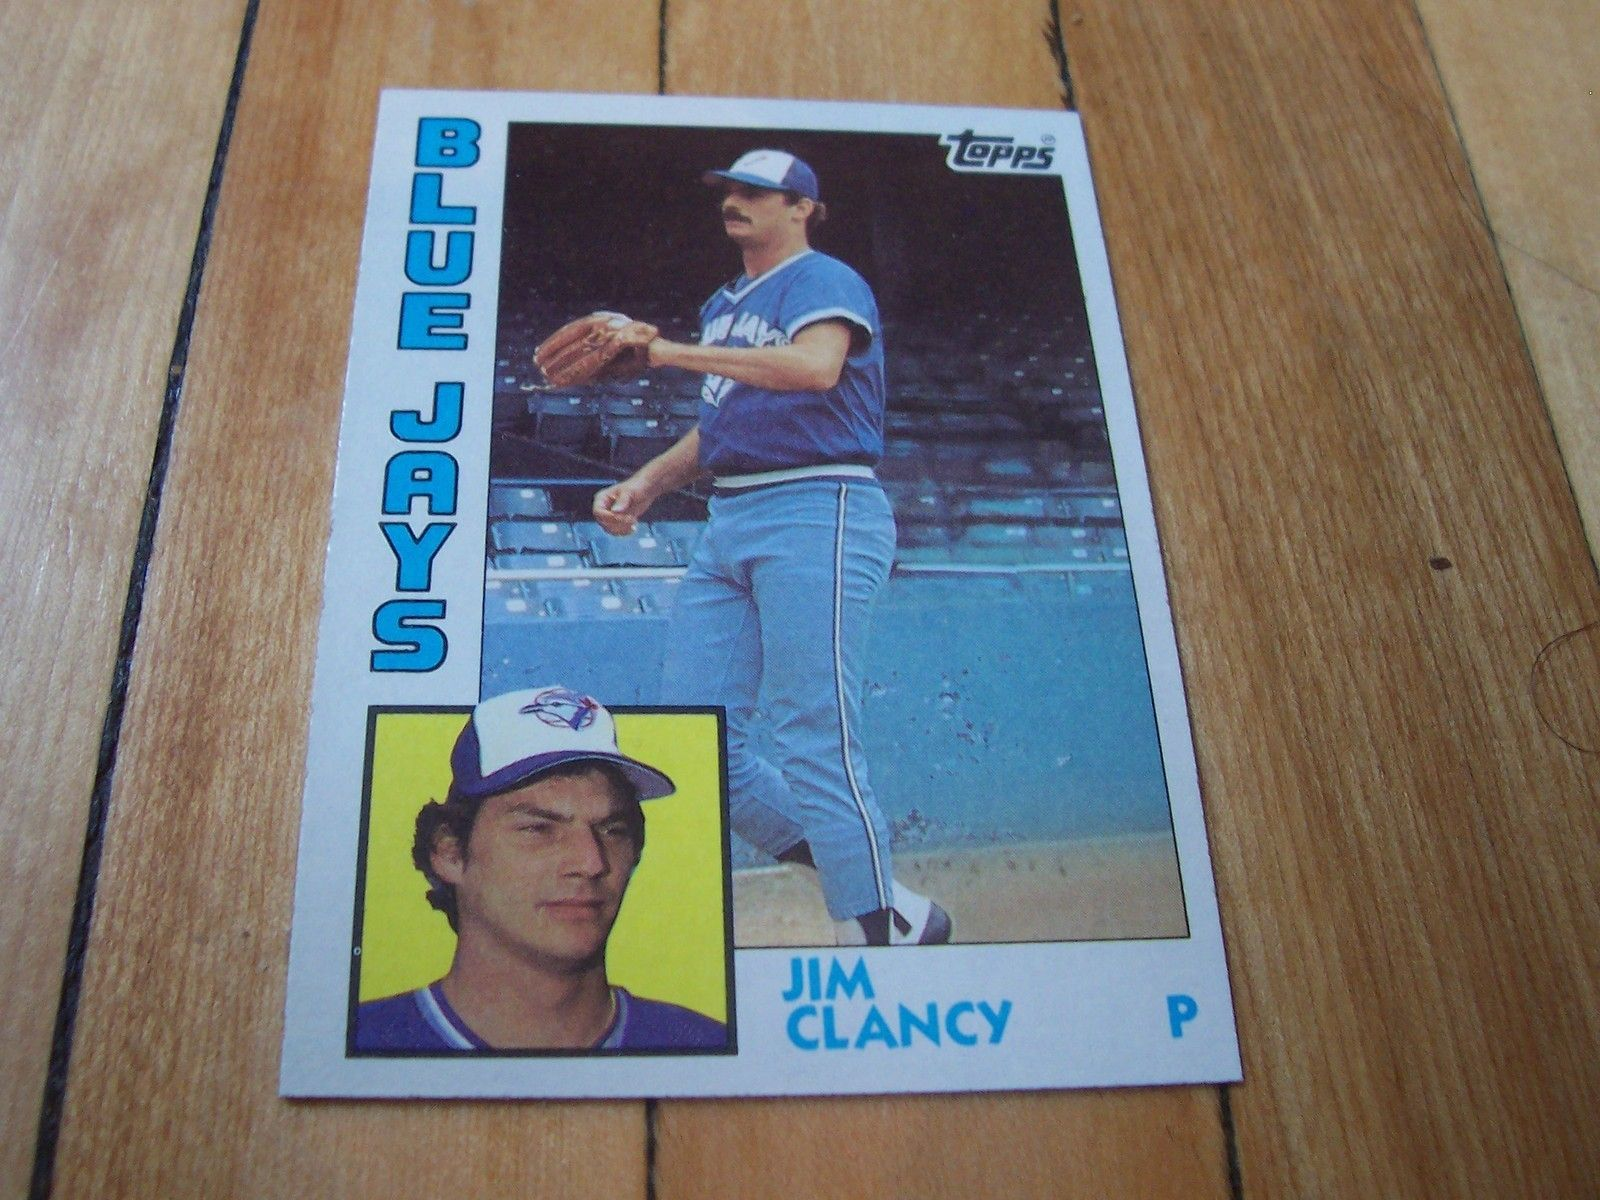 1984 Topps Card 575 Jim Clancy 1984 Topps Baseball Cards